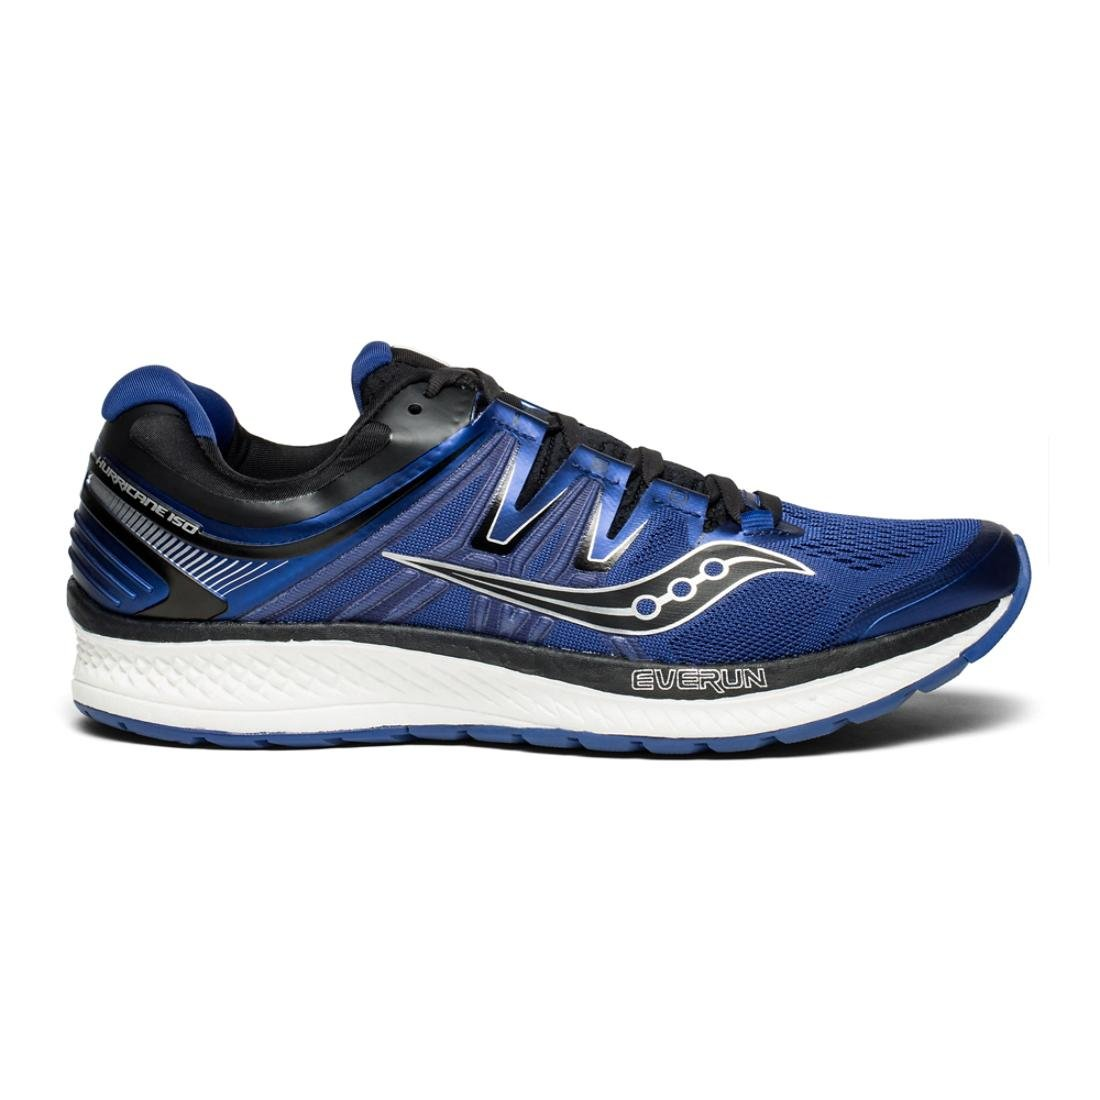 Saucony Men's Hurricane Iso 4 Running Shoe B078PNSBFZ 14 M US|Blue/Black